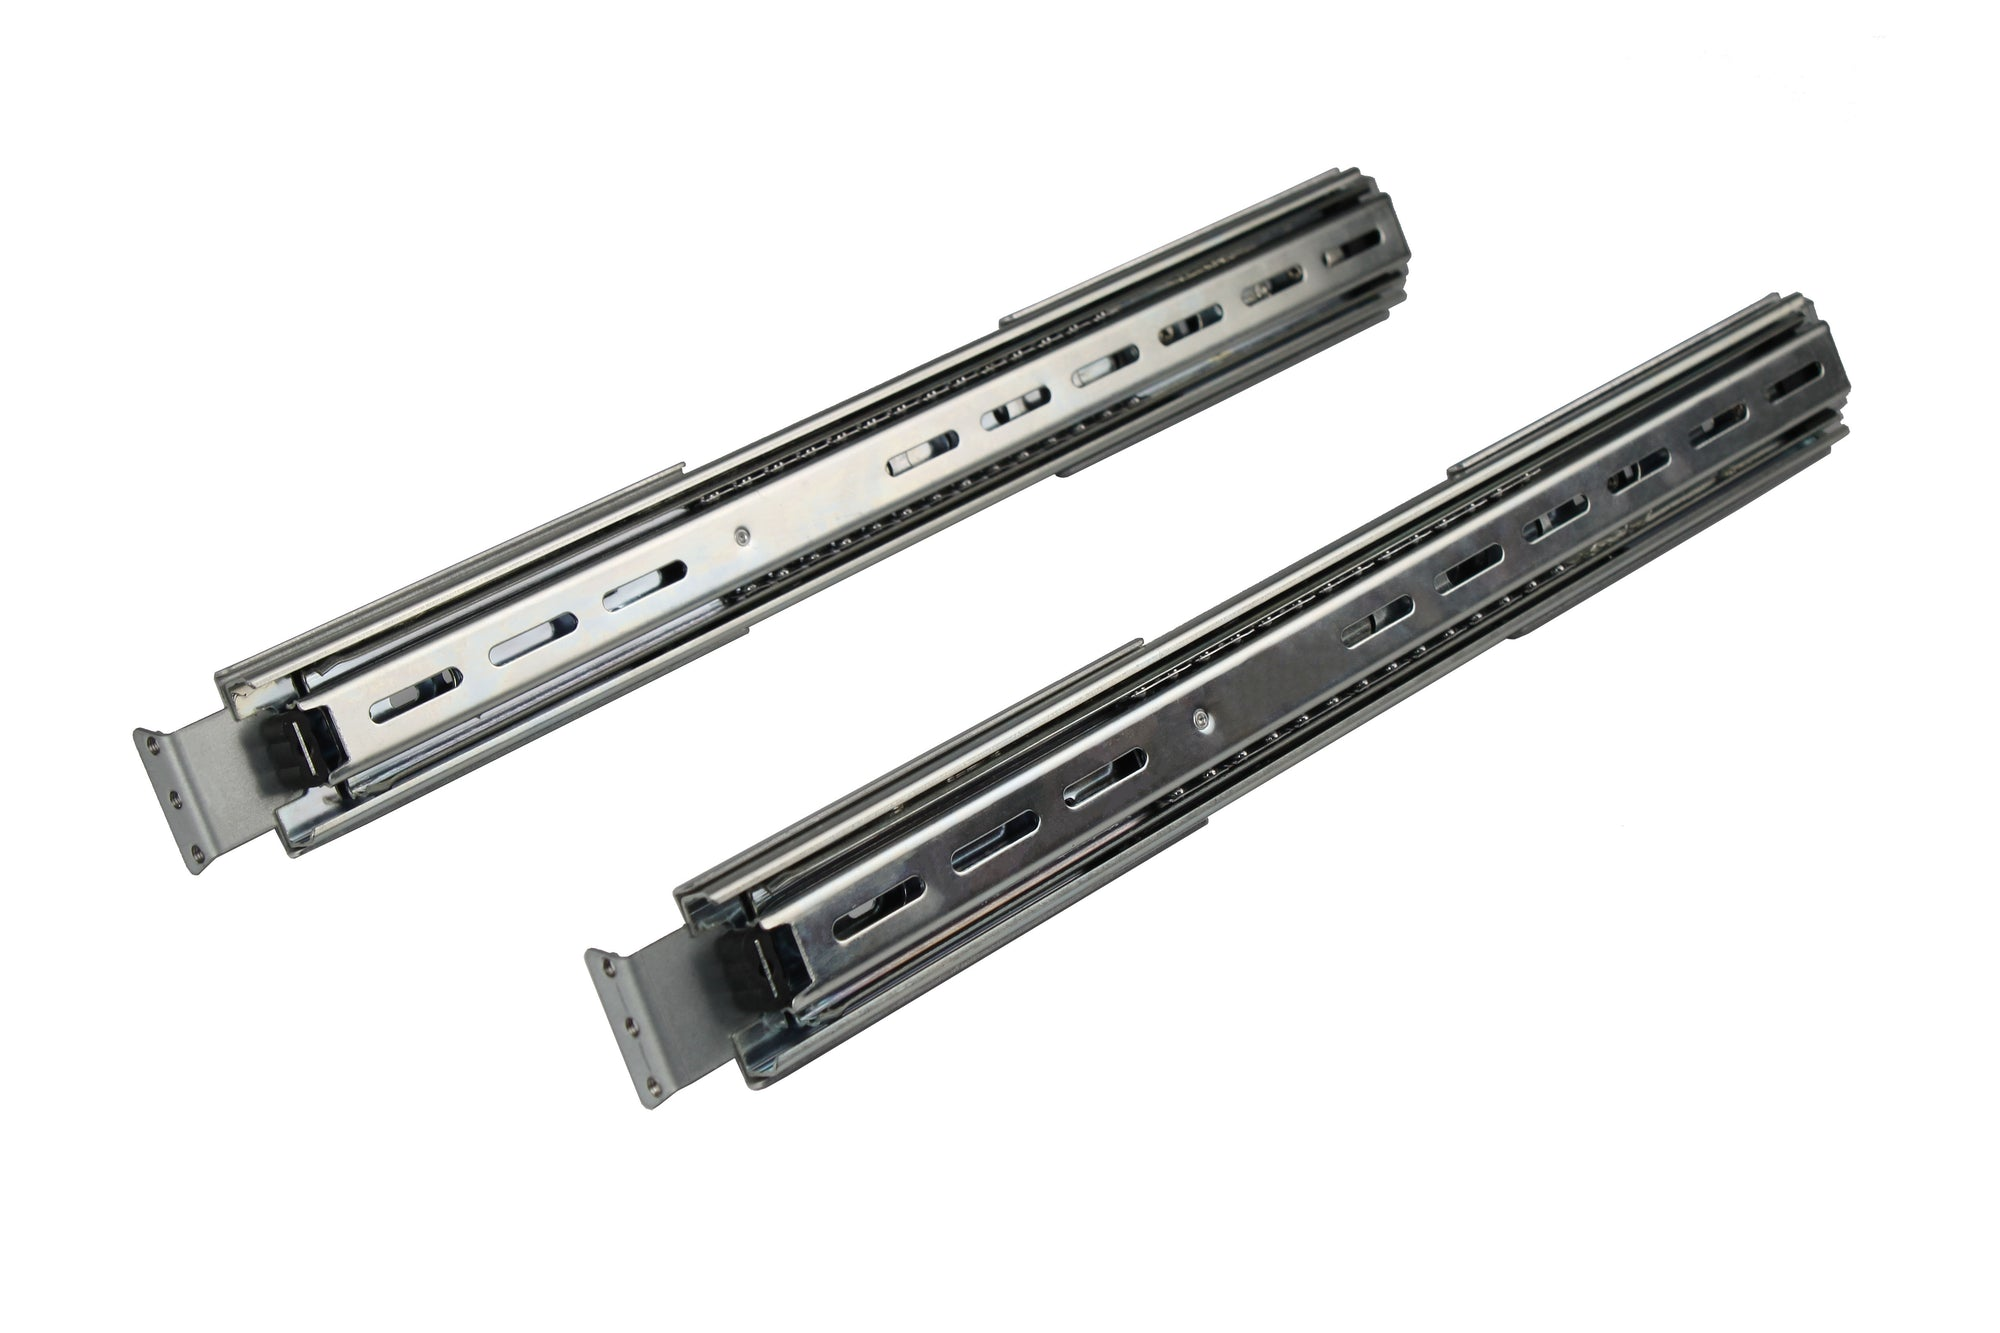 "RackPc Rail Kit 18"" - X-Case.co.uk Ltd"